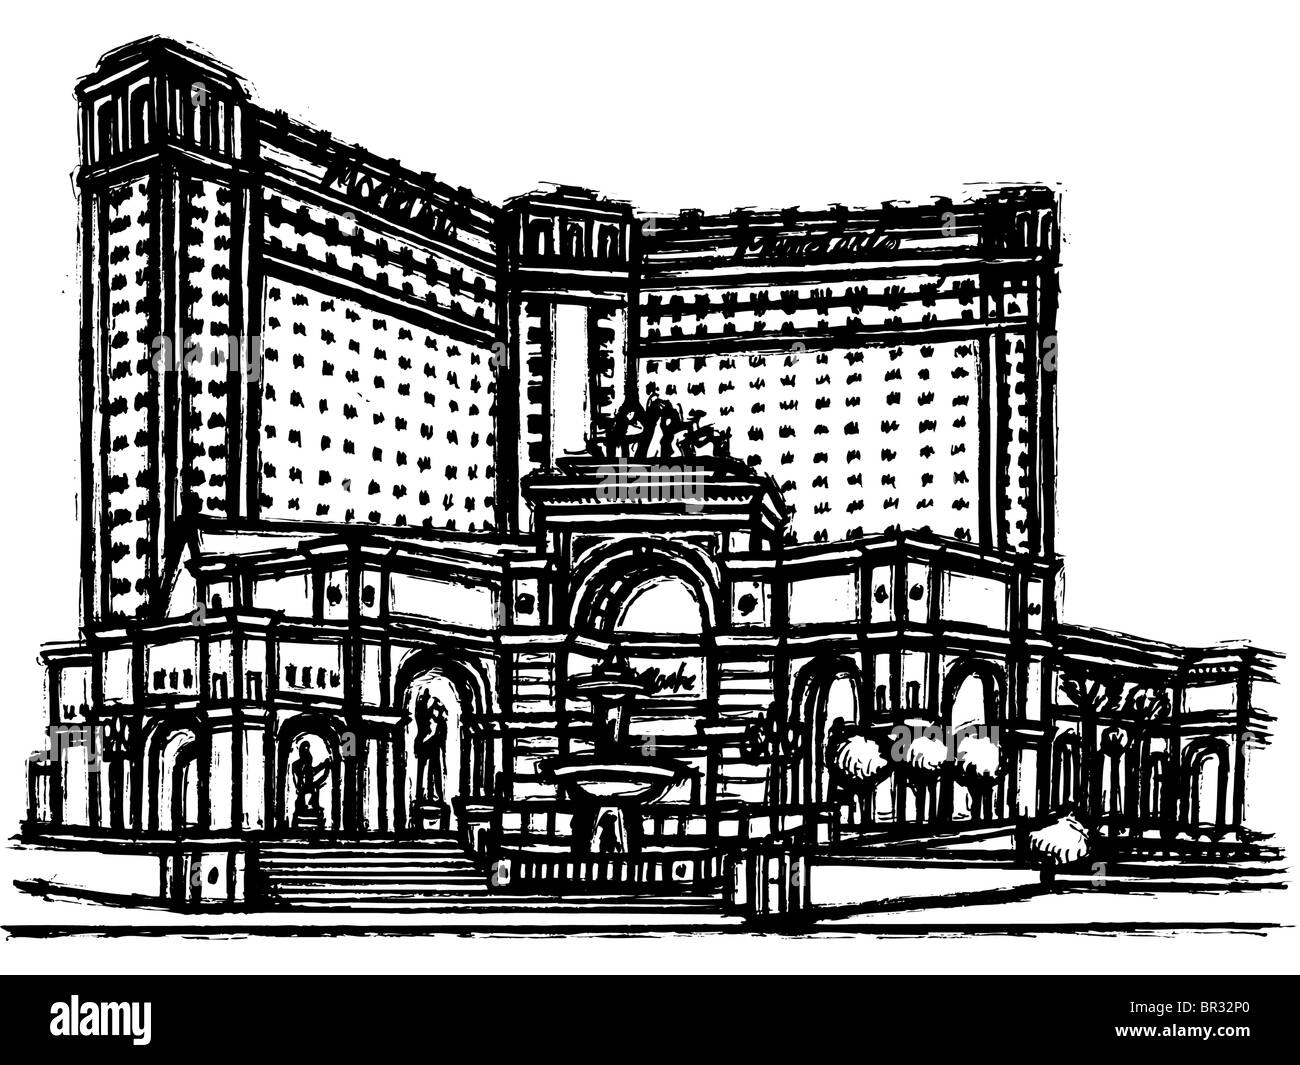 A black and white illustration of a luxurious hotel - Stock Image